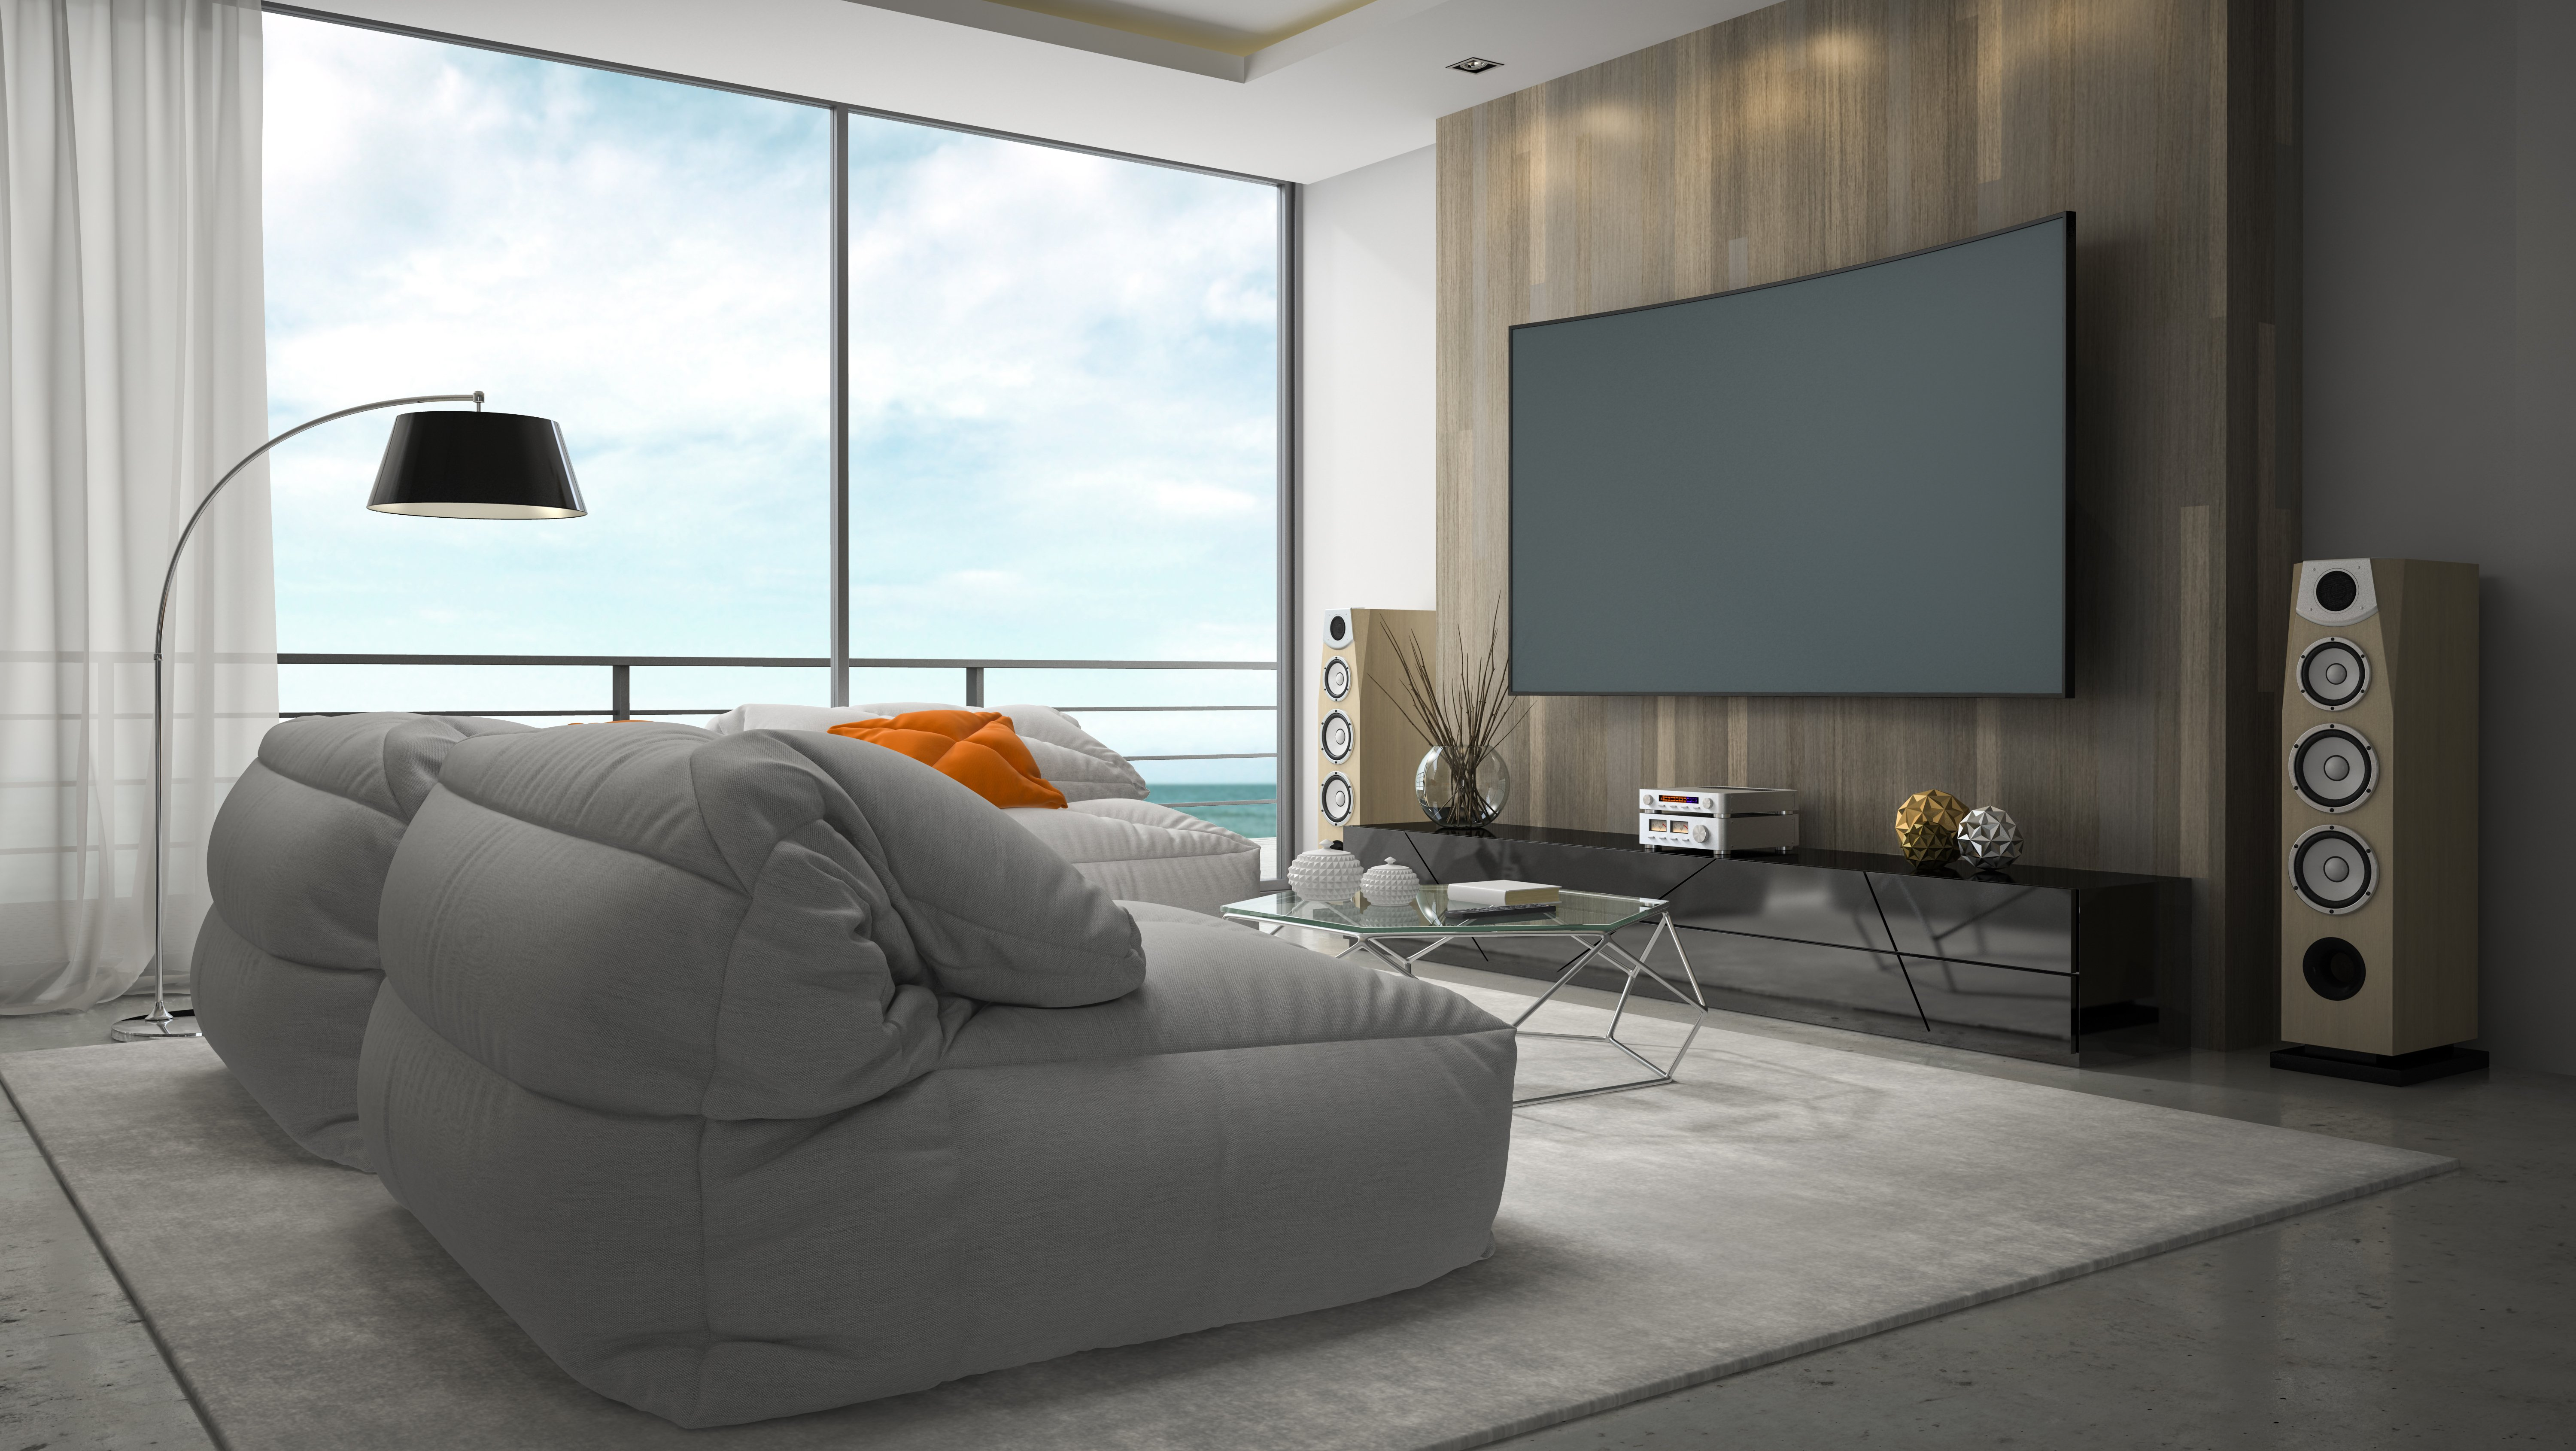 A Quick Guide To The Best Entertainment Room Design Ideas Homelane Blog